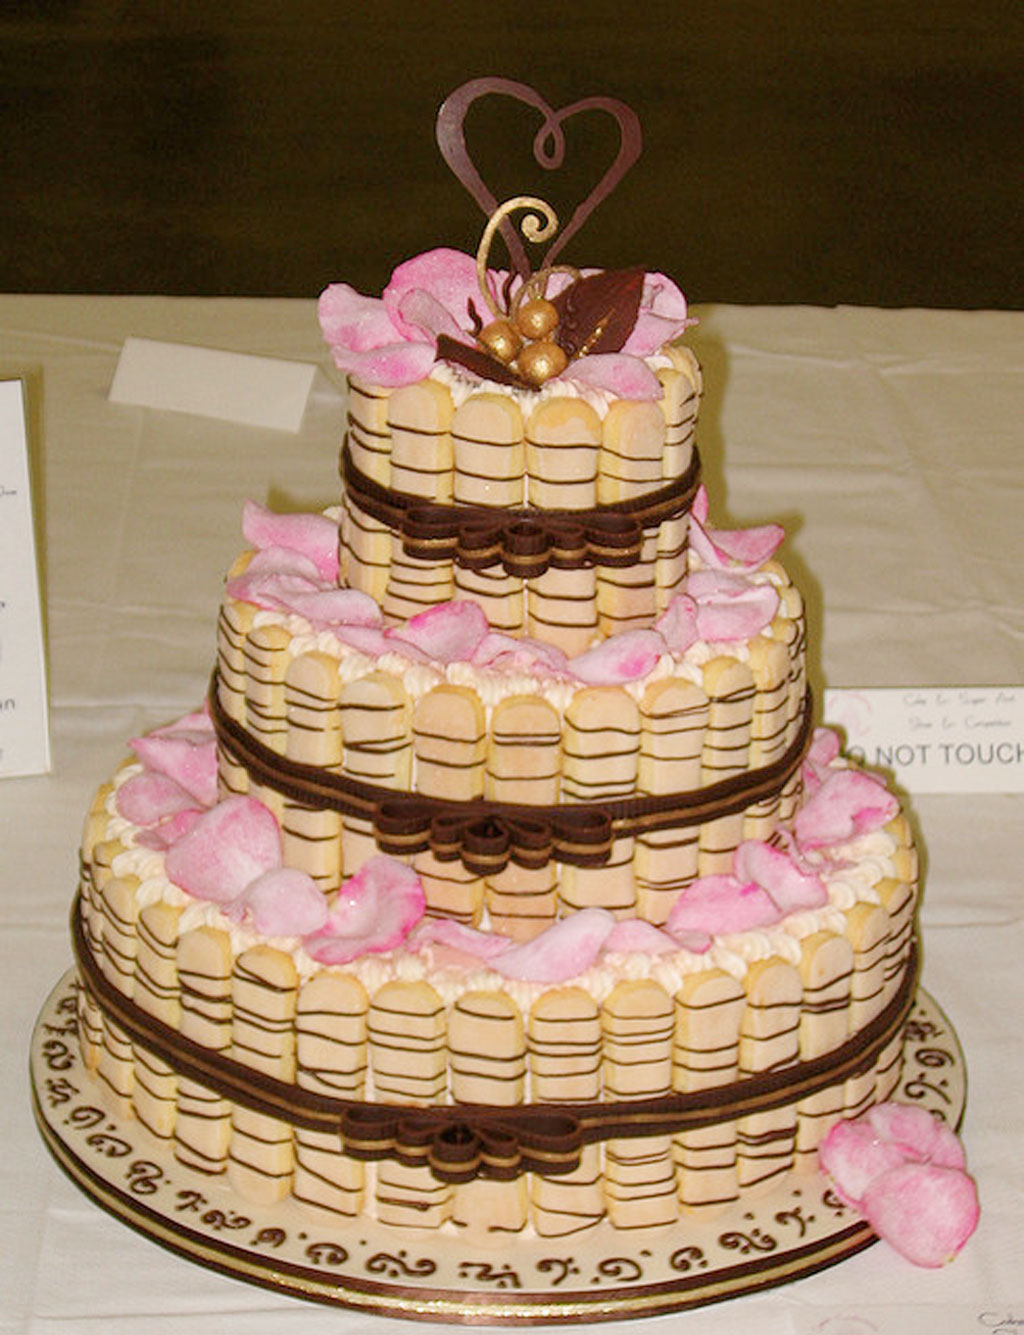 tiramisu wedding cake decoration 1 wedding cake cake ideas by. Black Bedroom Furniture Sets. Home Design Ideas